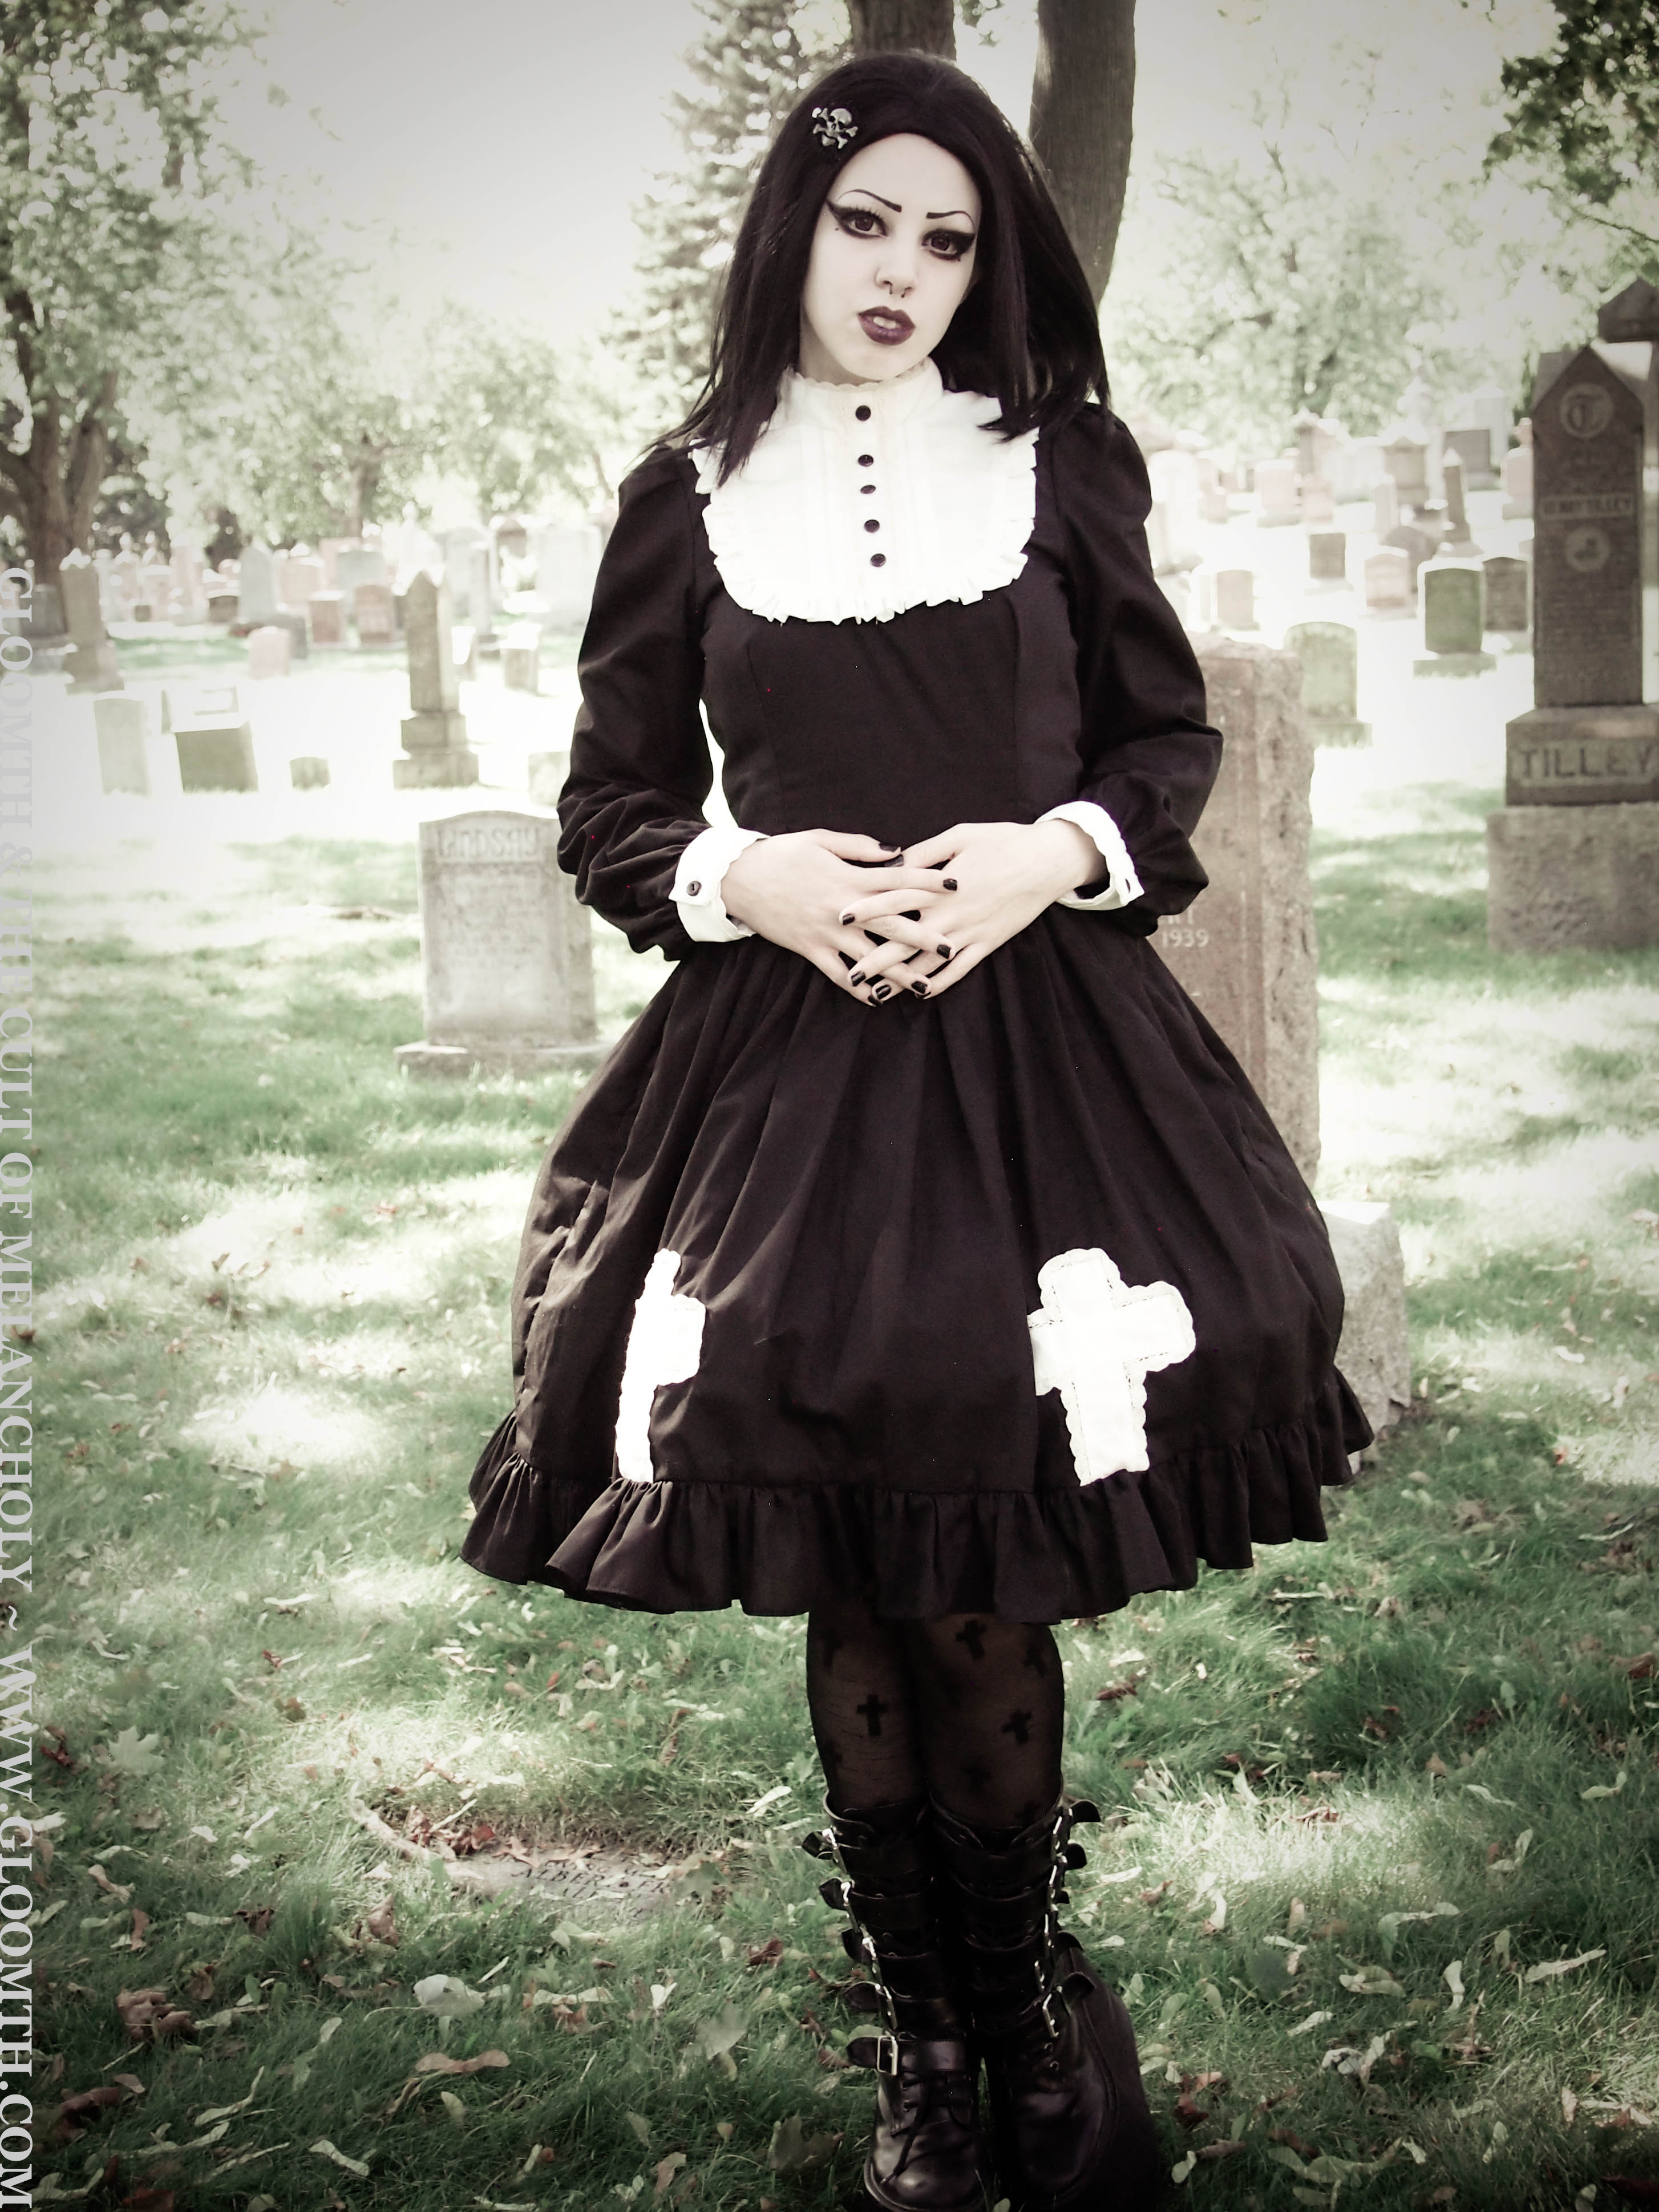 New Gothic Cemetery Photoshoot Gloomth The Cult Of